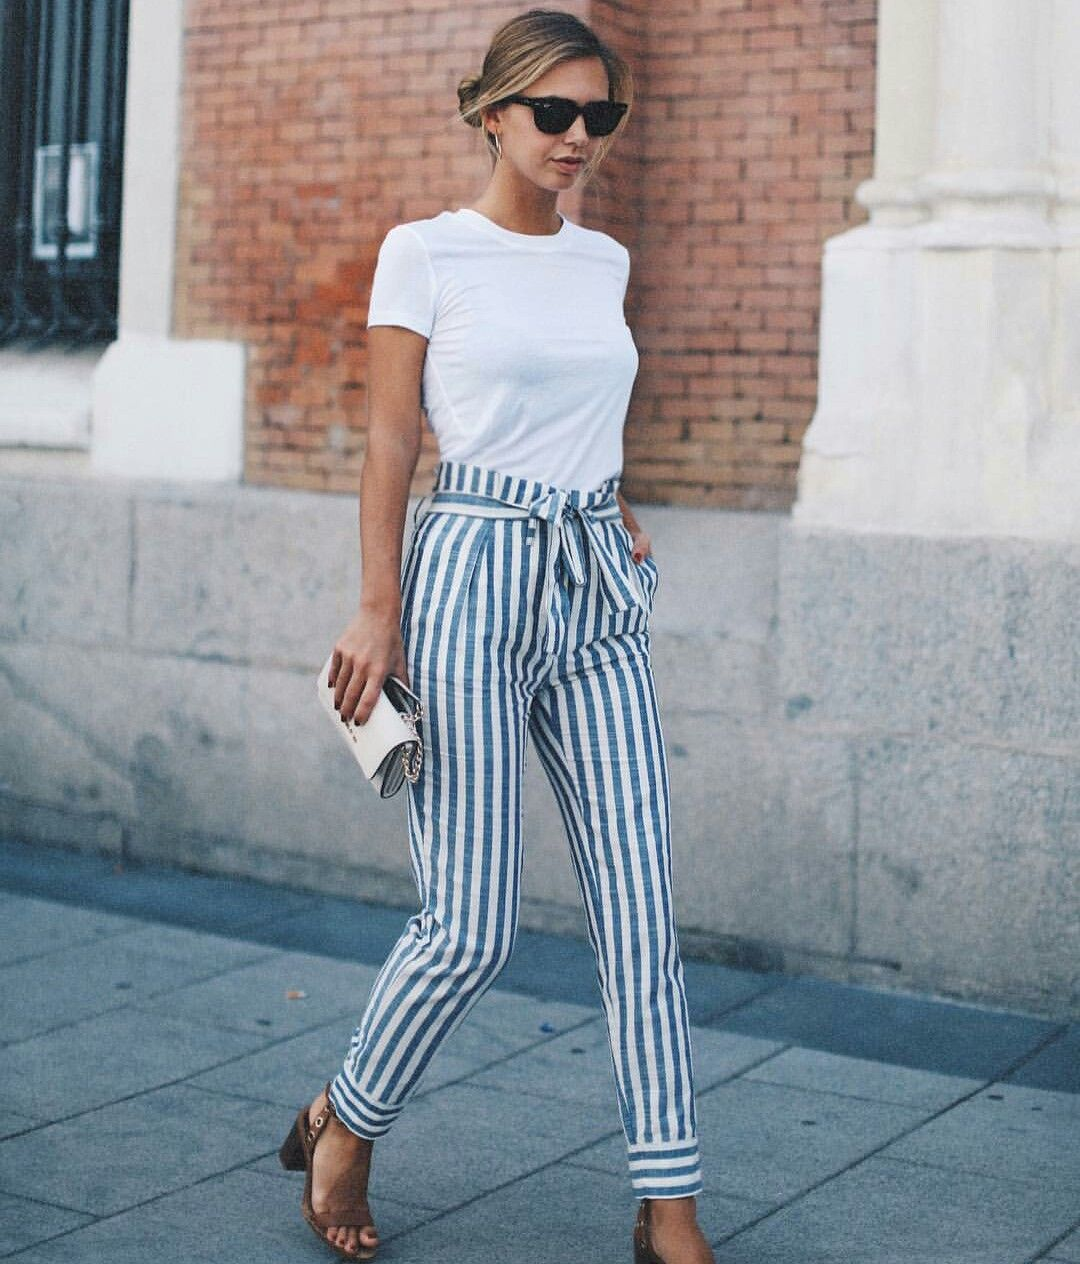 Women Striped Pants with white shirt